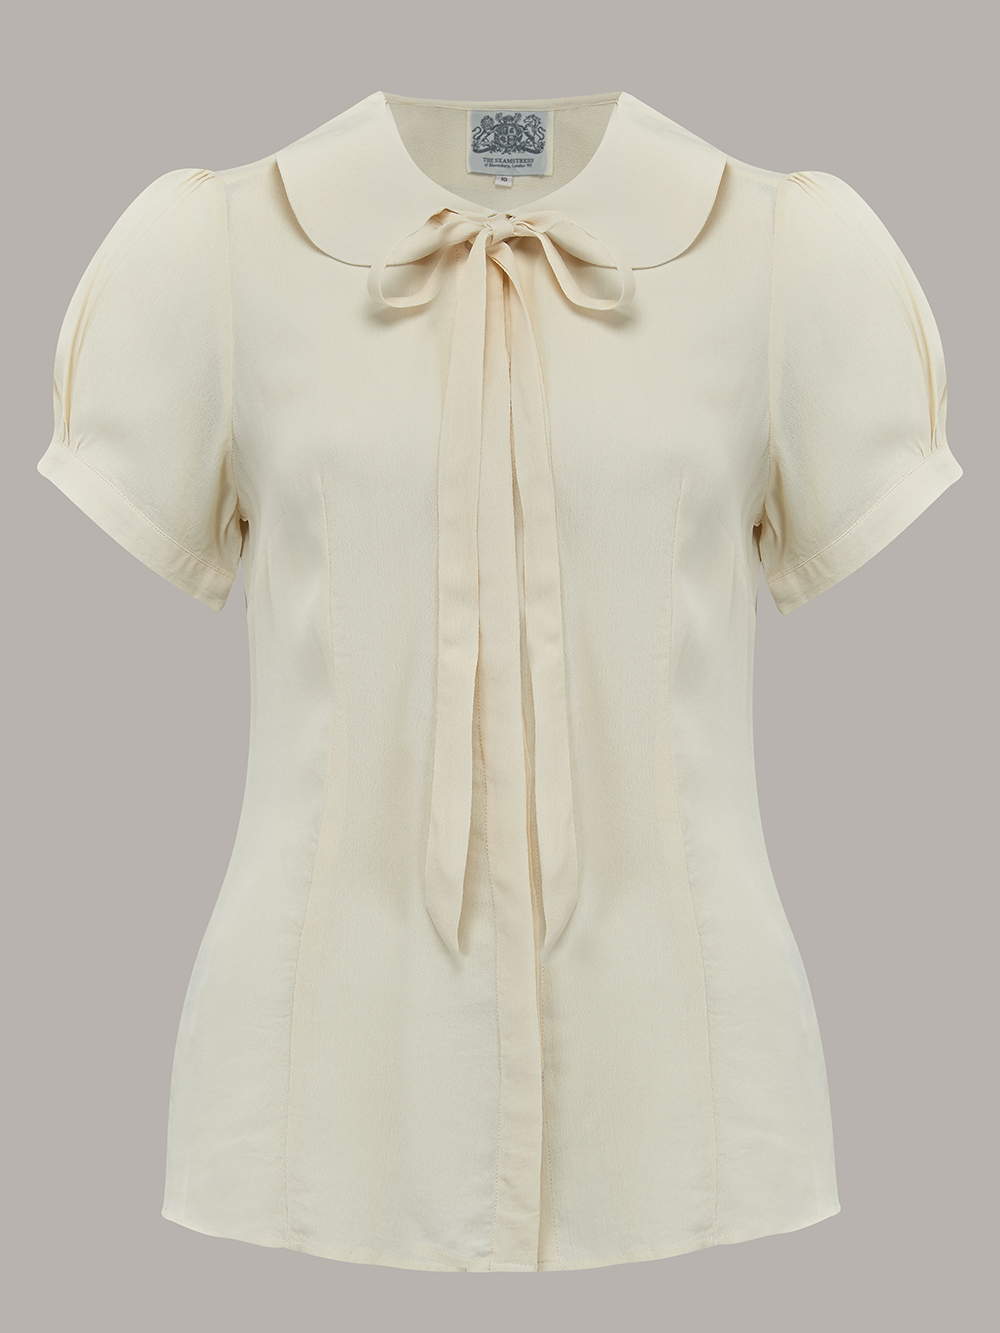 1940s Blouses and Tops Tie Blouse - LiliacPink Flower 8 £39.00 AT vintagedancer.com